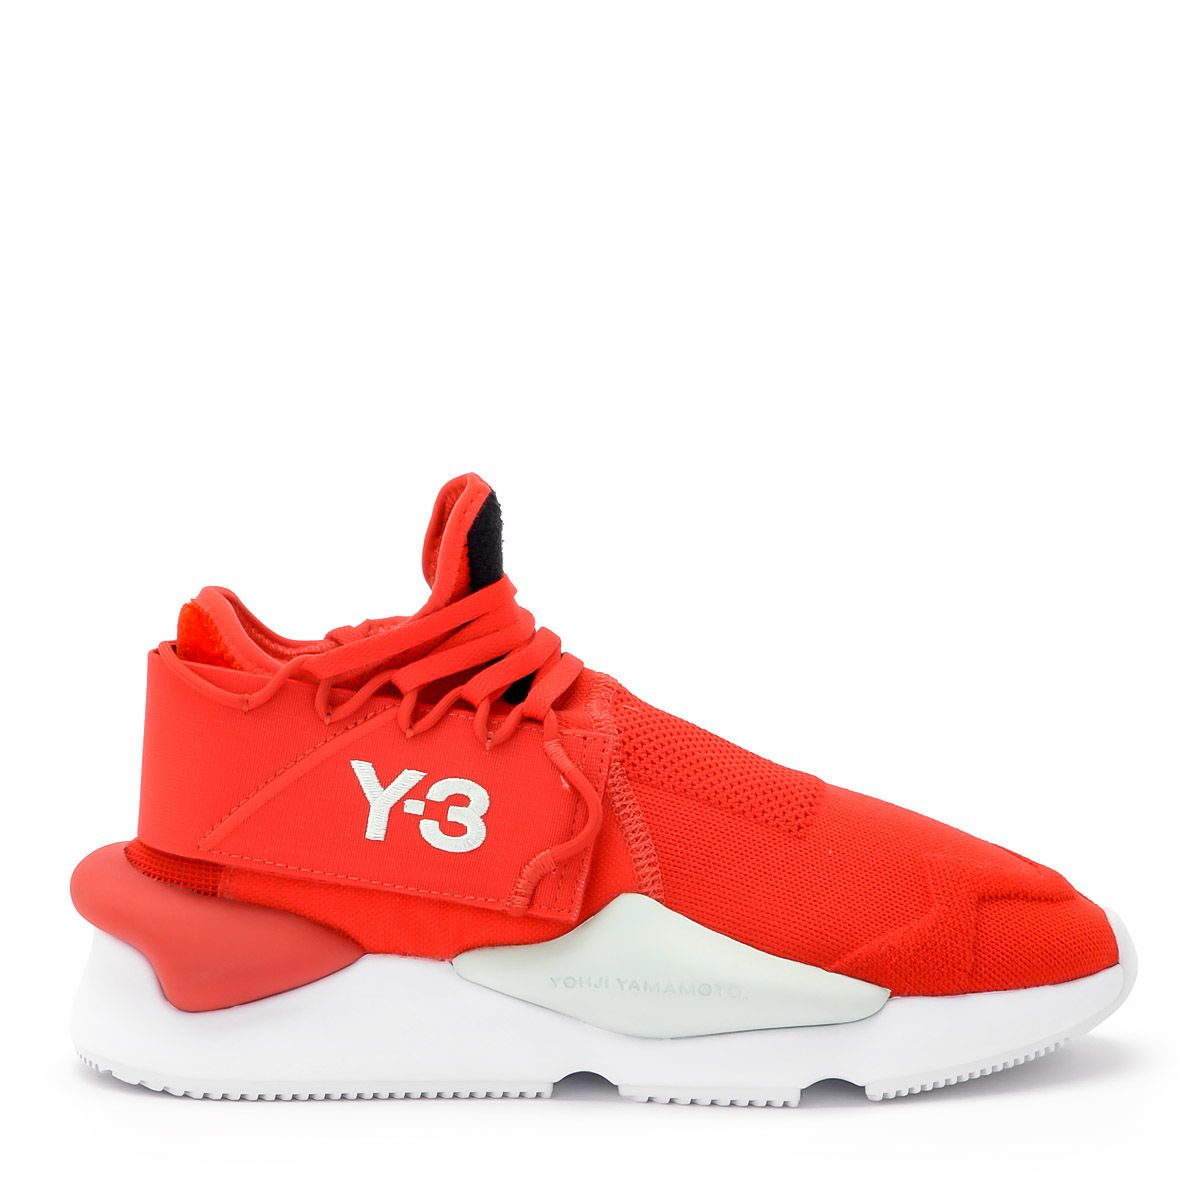 Y-3 Kaiwa Knit Red Fabric Sneaker